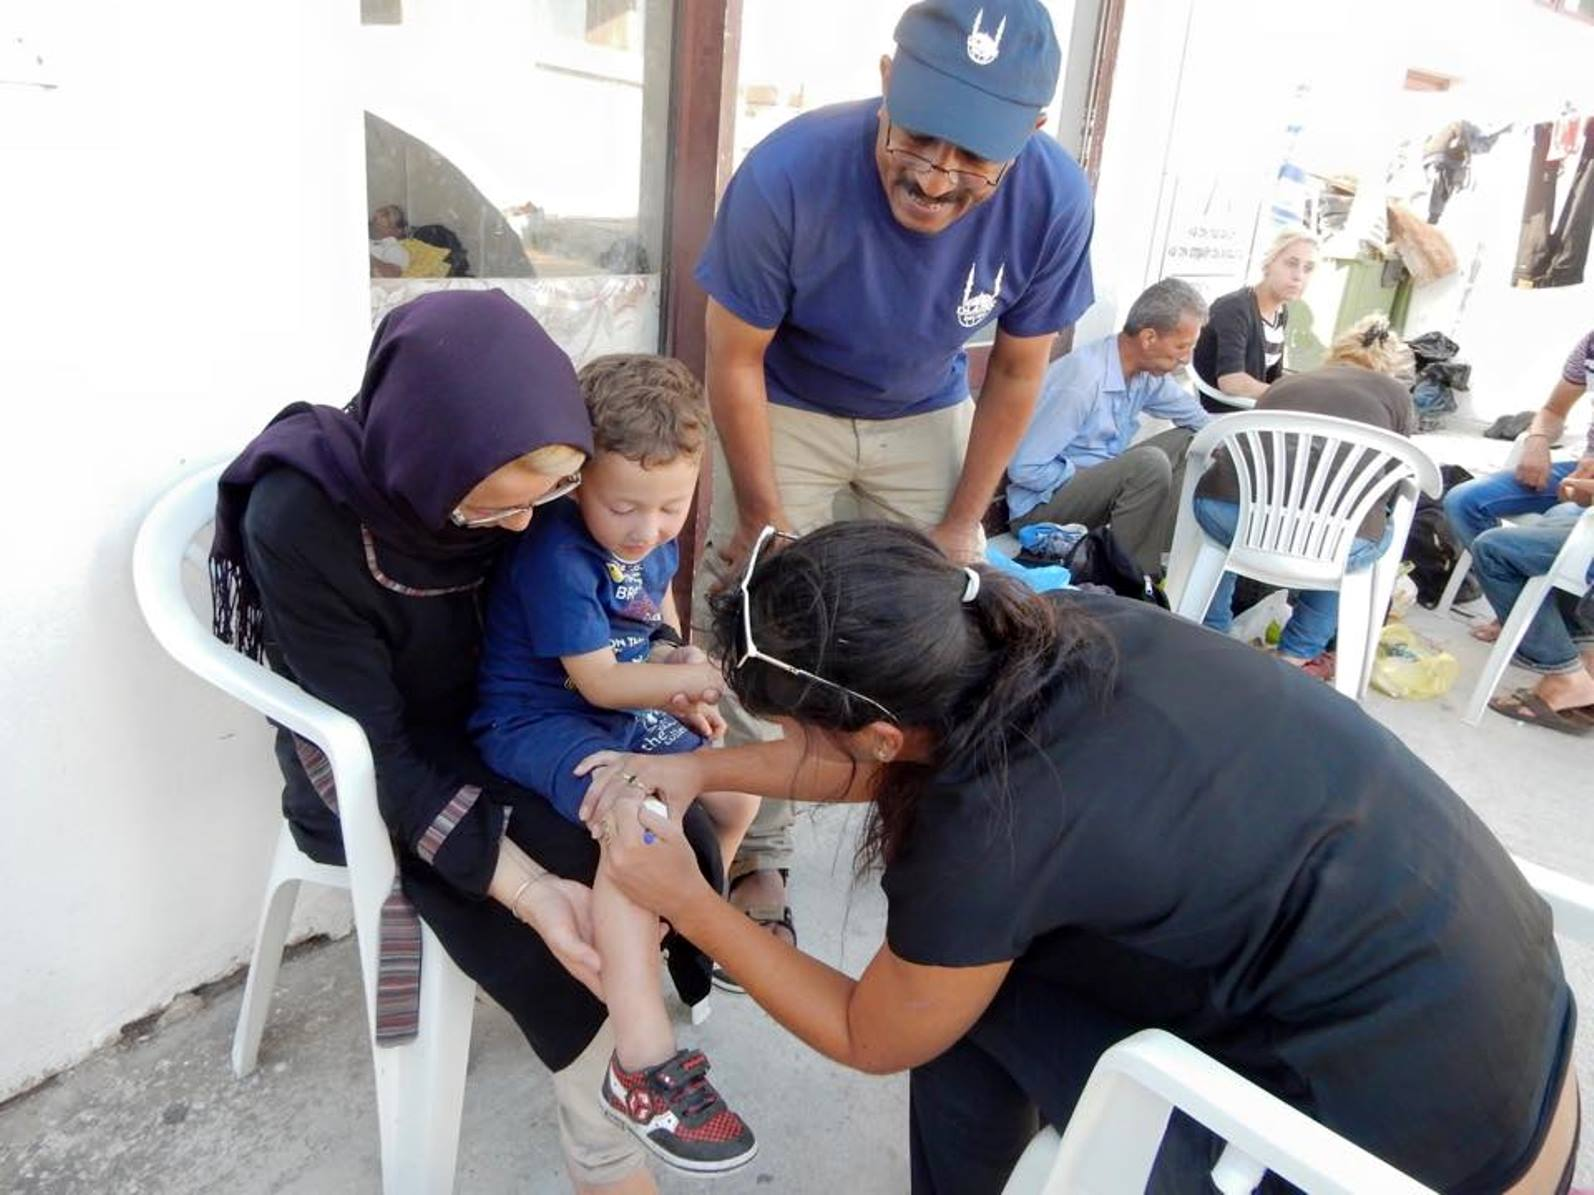 An IsraAID volunteer providing first aid in Greece. Photo via Facebook